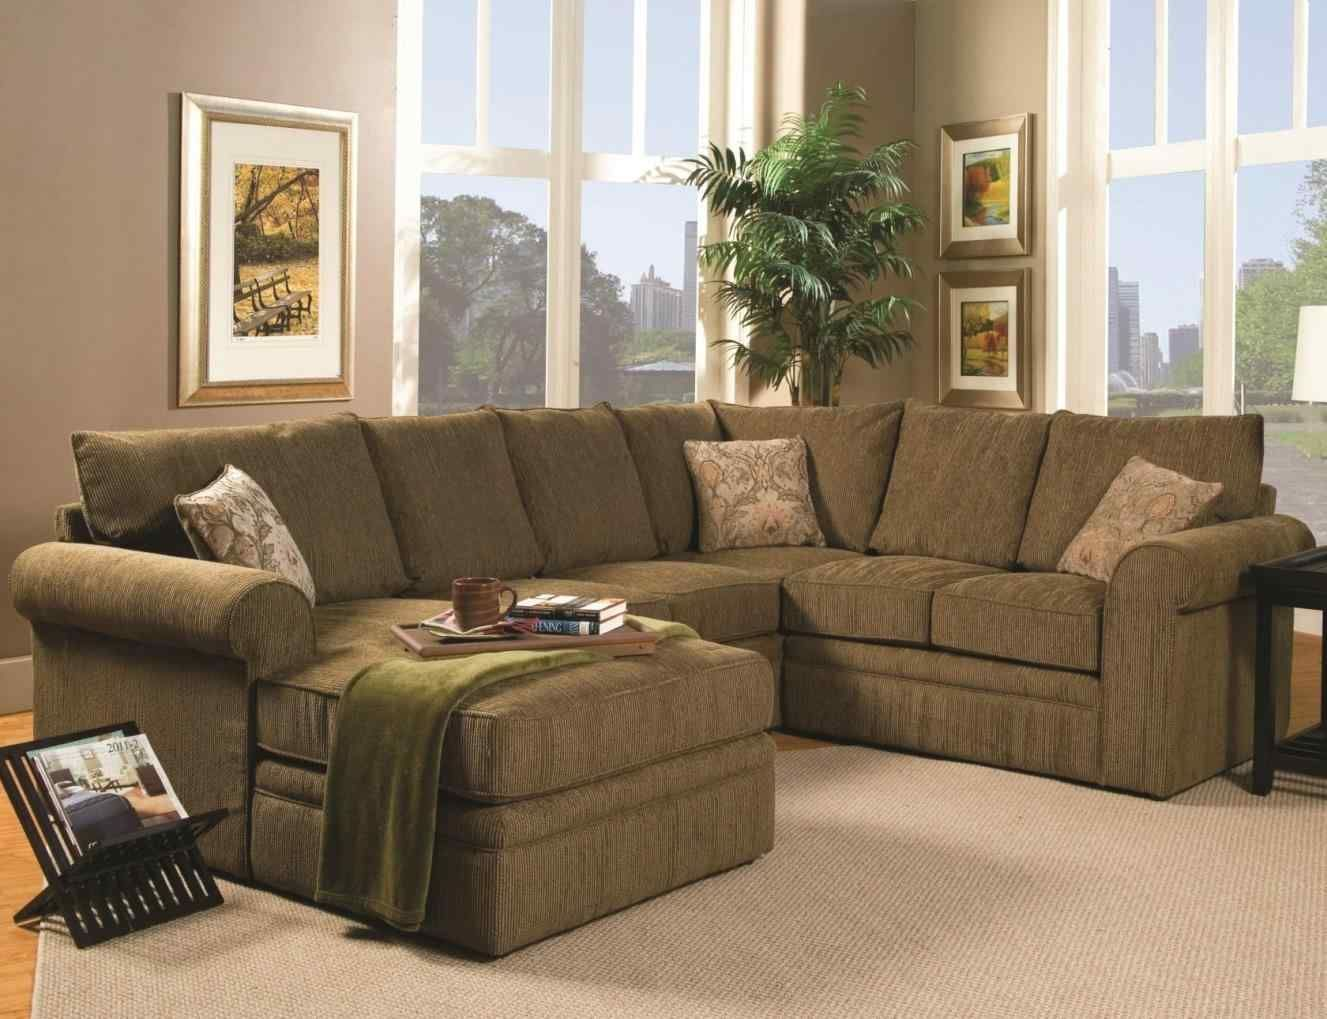 Bon Hand For Sale Second Bauhaus Sectional Sofa Microfiber Hand S For Sale  Chelsea Home Furniture Roosevelt Reversible Chaise Chelsea Bauhaus  Sectional Sofa